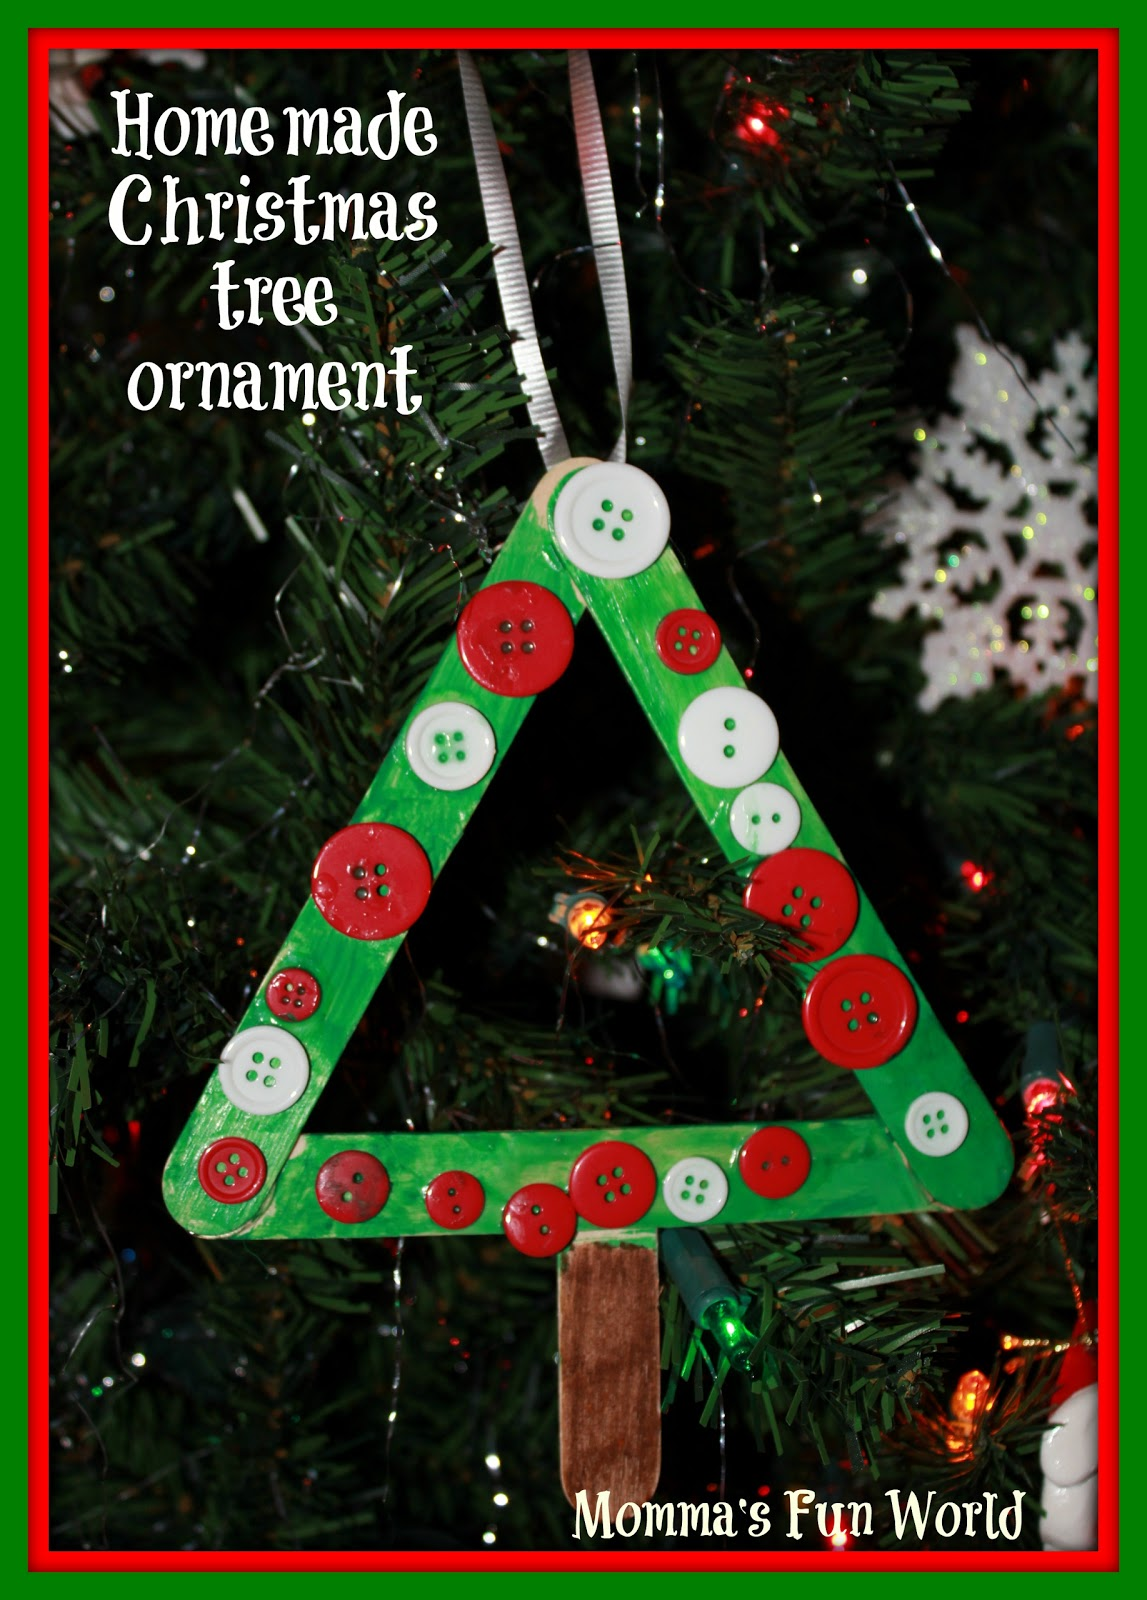 Christmas tree picture frame ornaments - These Ornaments Are Great For Fine Motor Skills For Kids Picking Up The Buttons And Placing Them Is Also Great Eye Hand Coordination